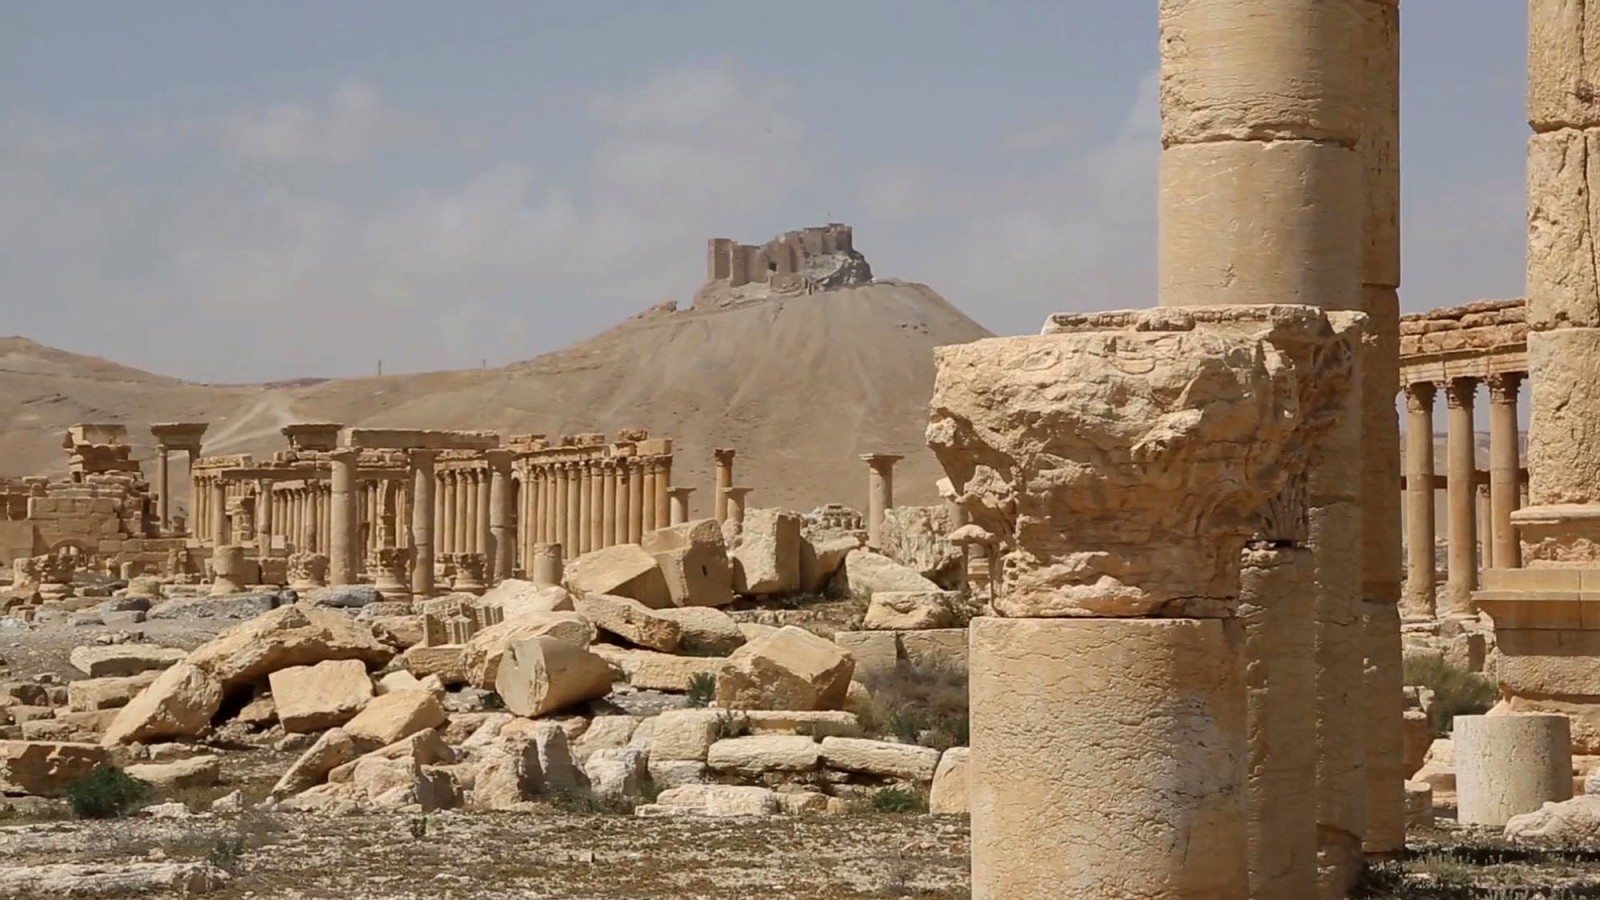 This photo released on Monday March 28, 2016, by the Syrian official news agency SANA, shows a general view of the ancient ruins of Palmyra, central Syria. A Syrian antiquities official says demining experts have so far removed 150 bombs planted by the Islamic State group inside the archaeological site in the historic town of Palmyra. Syrian troops captured the town from IS fighters on Sunday after three weeks of intense fighting. (SANA via AP)